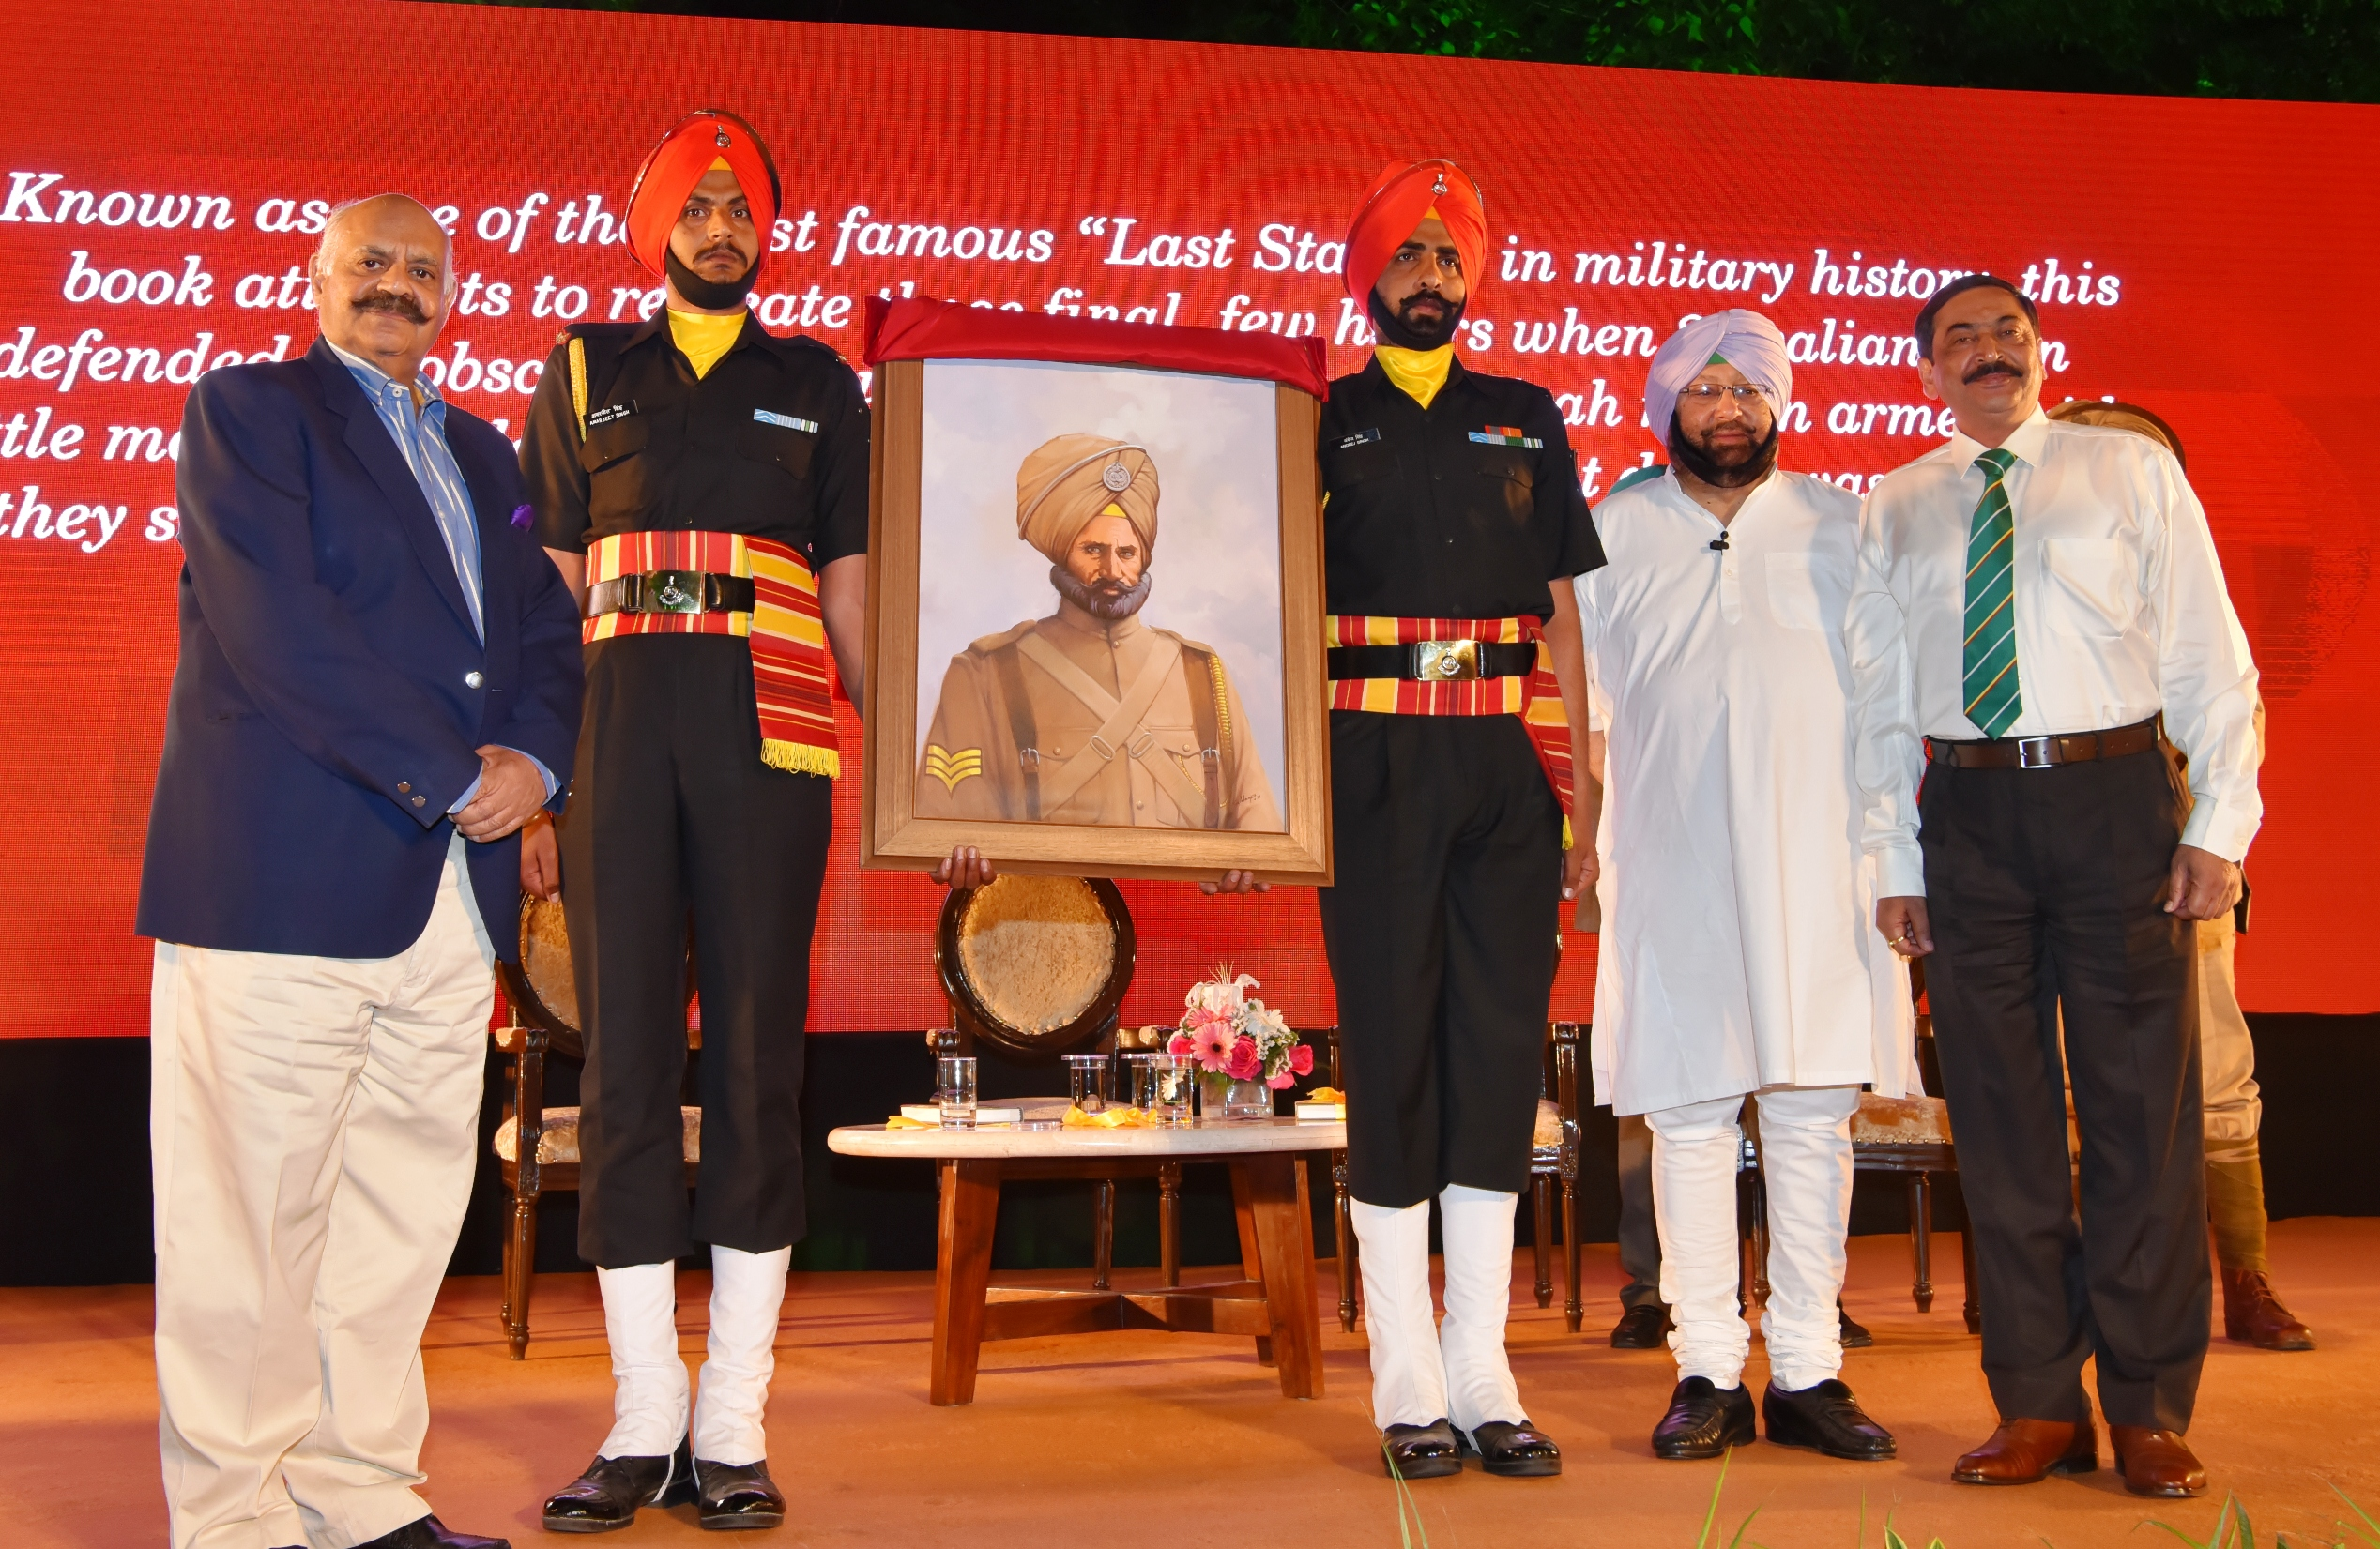 Captain Amarinder unveils his much-awaited Saragarhi Battle book to a distinguished audience